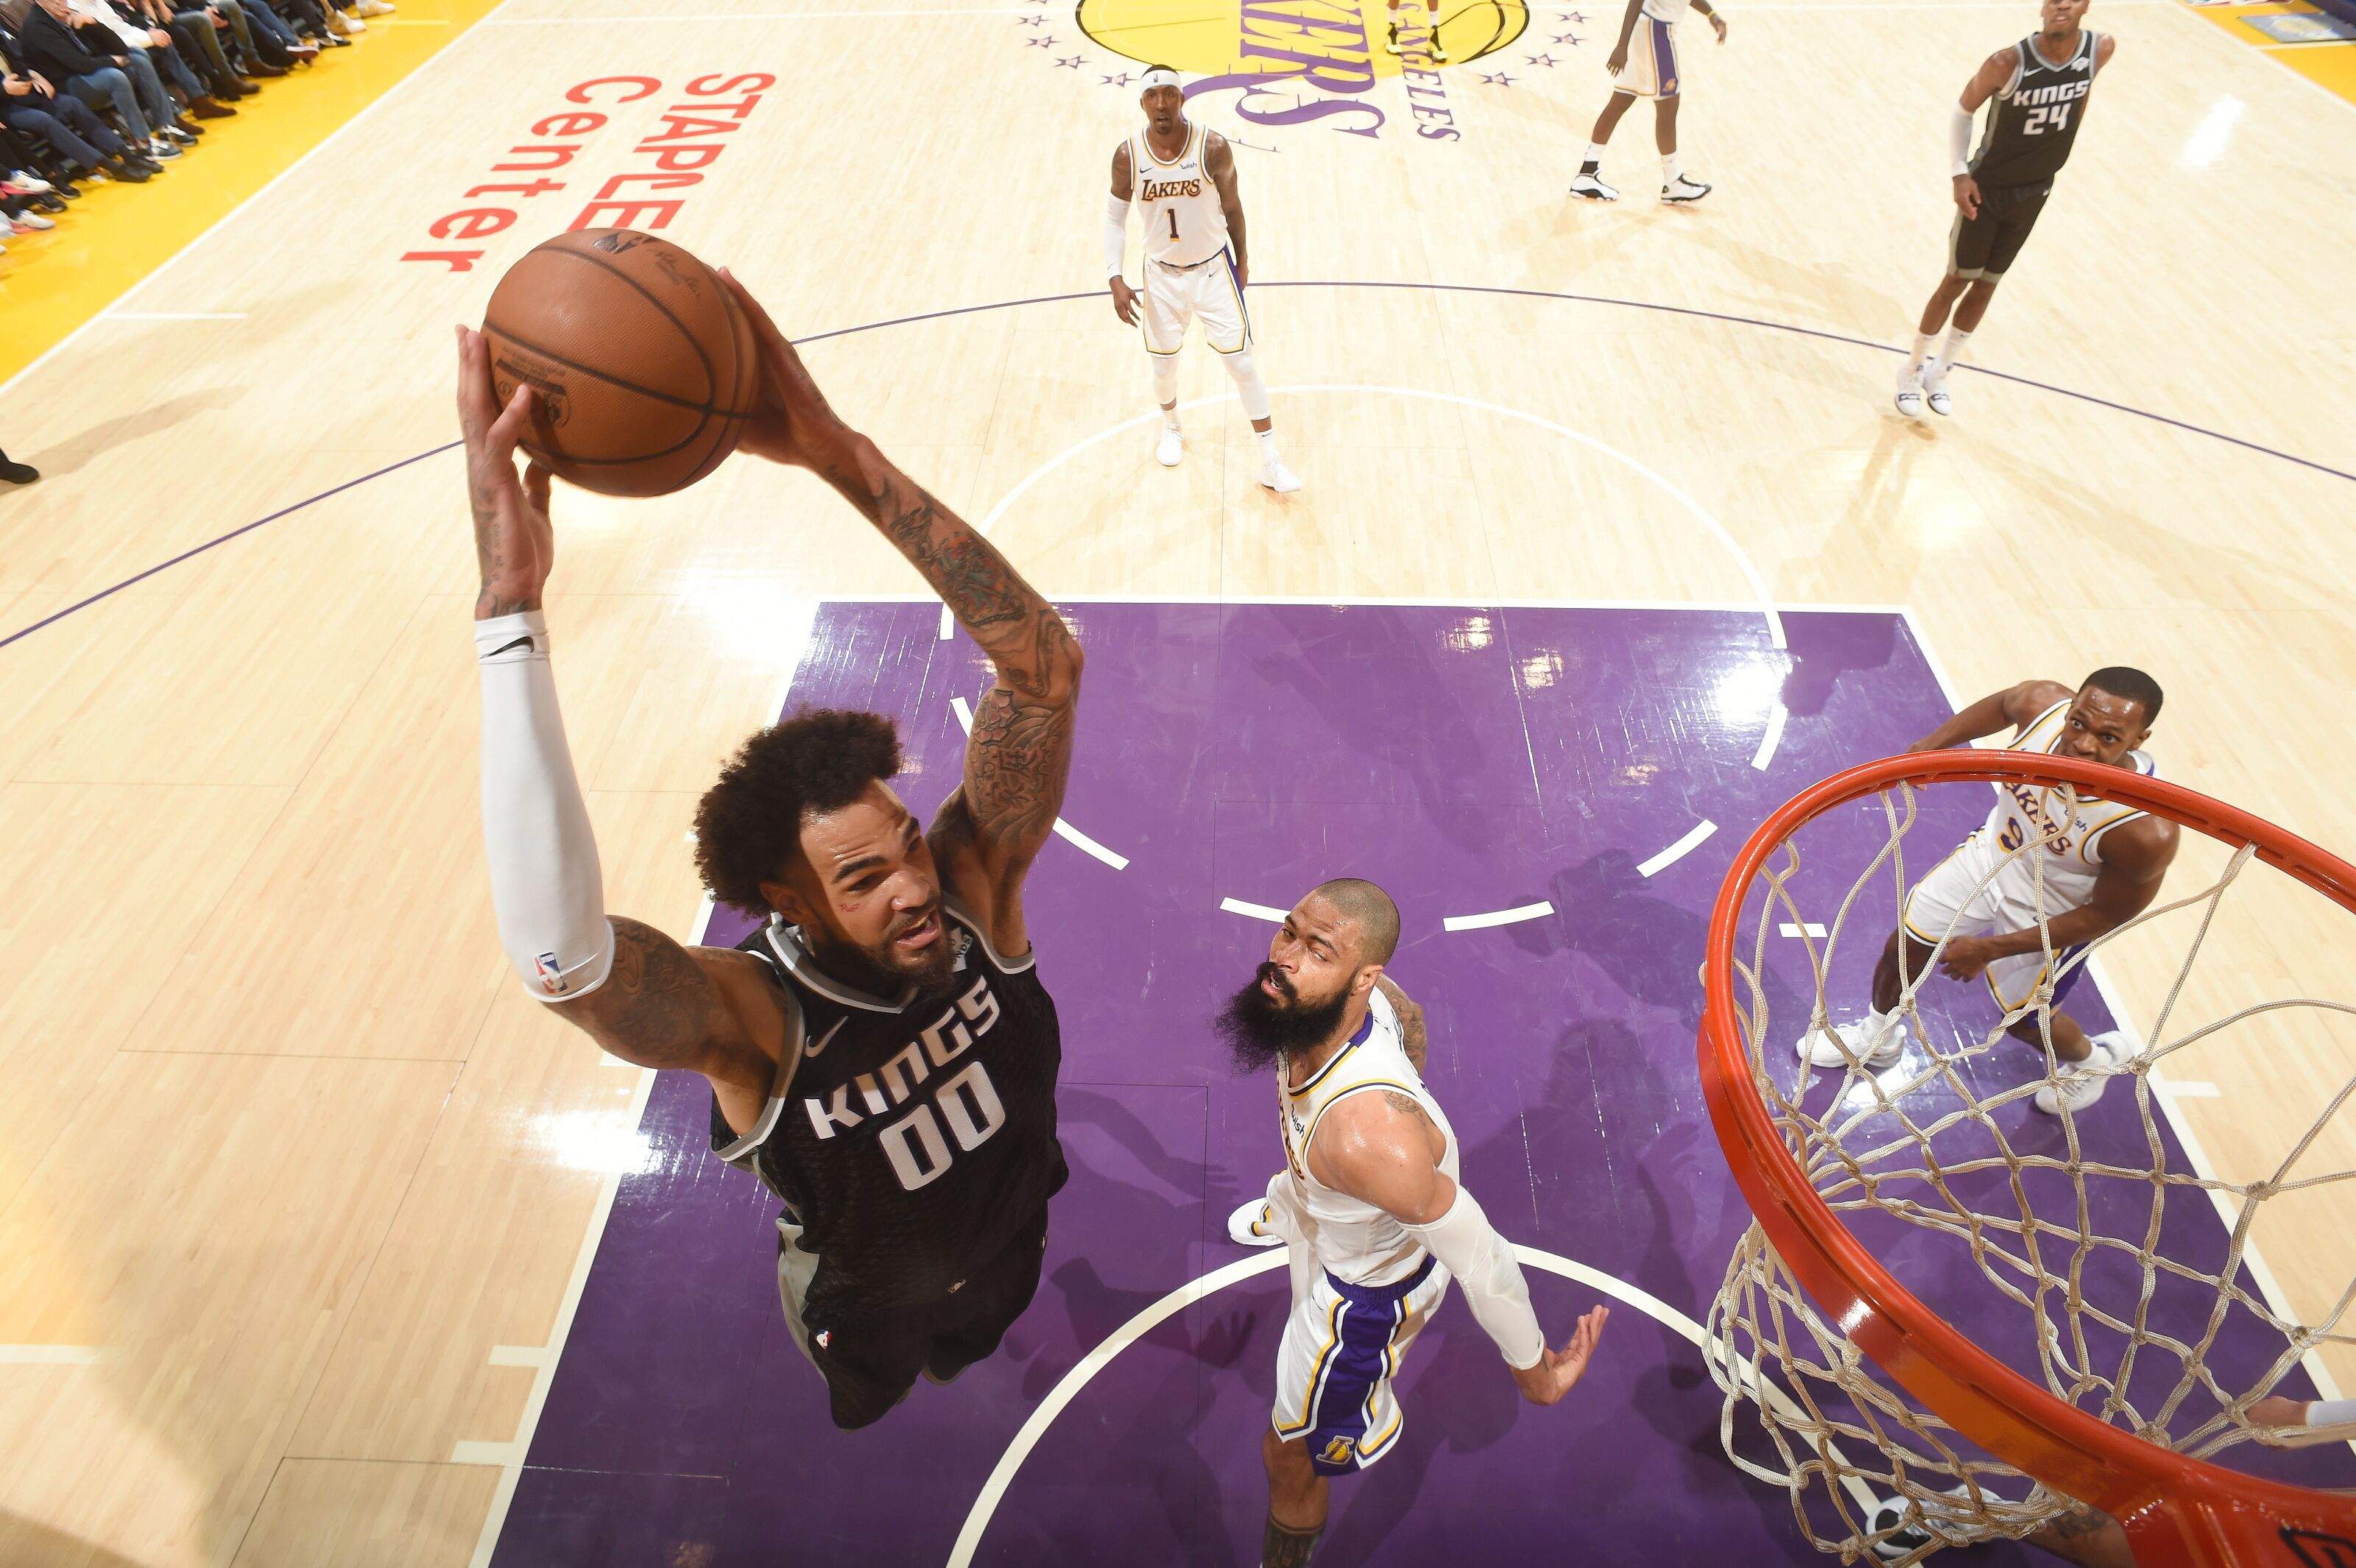 Golden State Warriors: Double-double average is Willie Cauley-Stein's next level